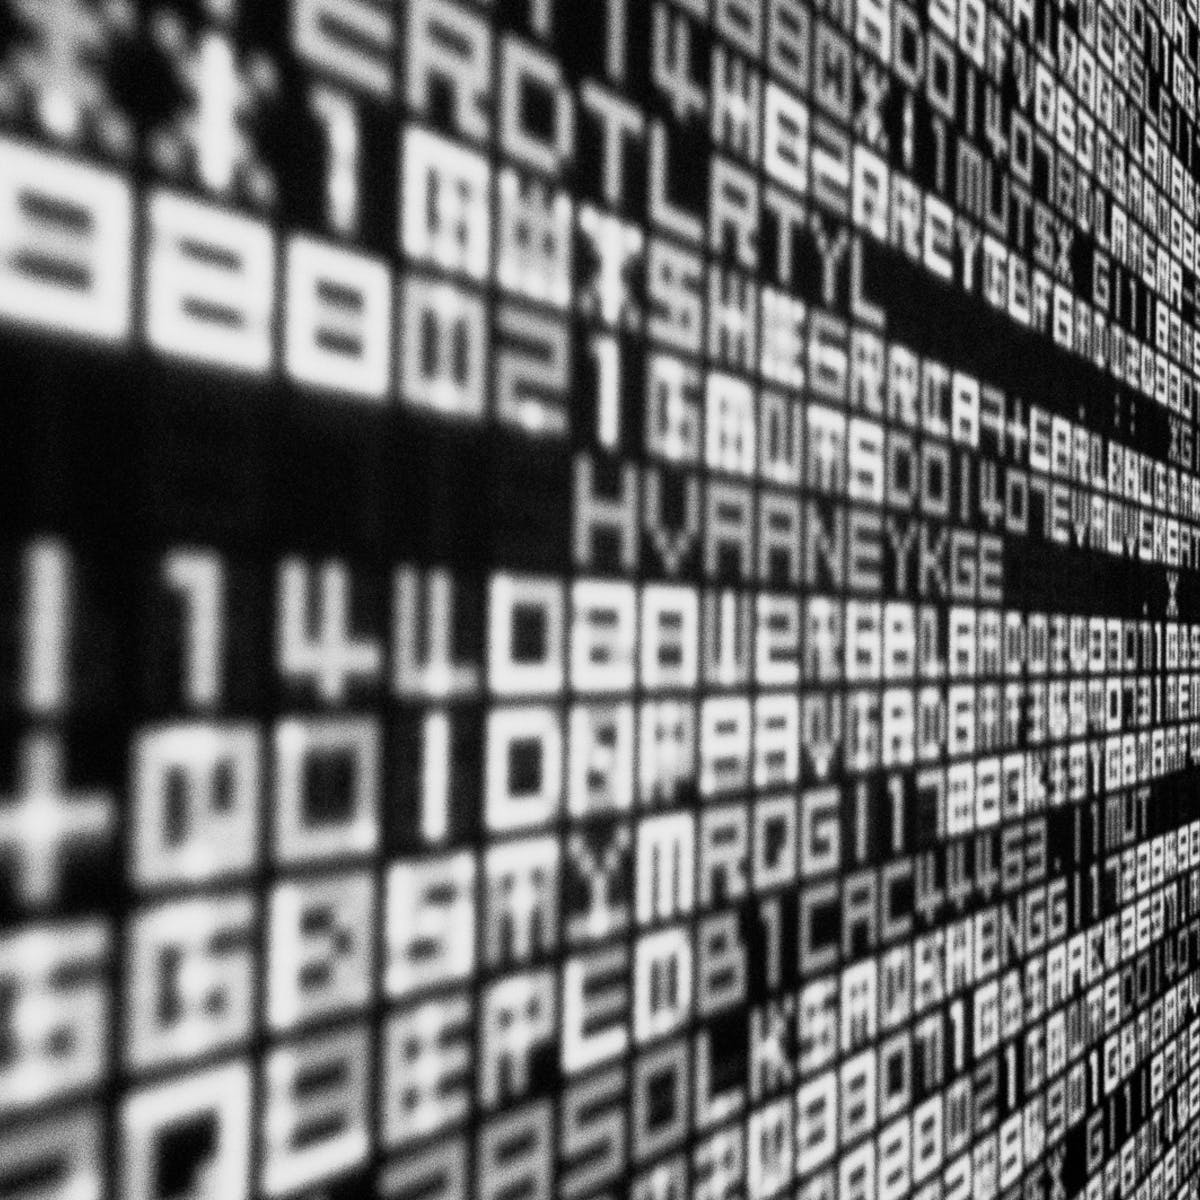 A Crash Course in Data Science